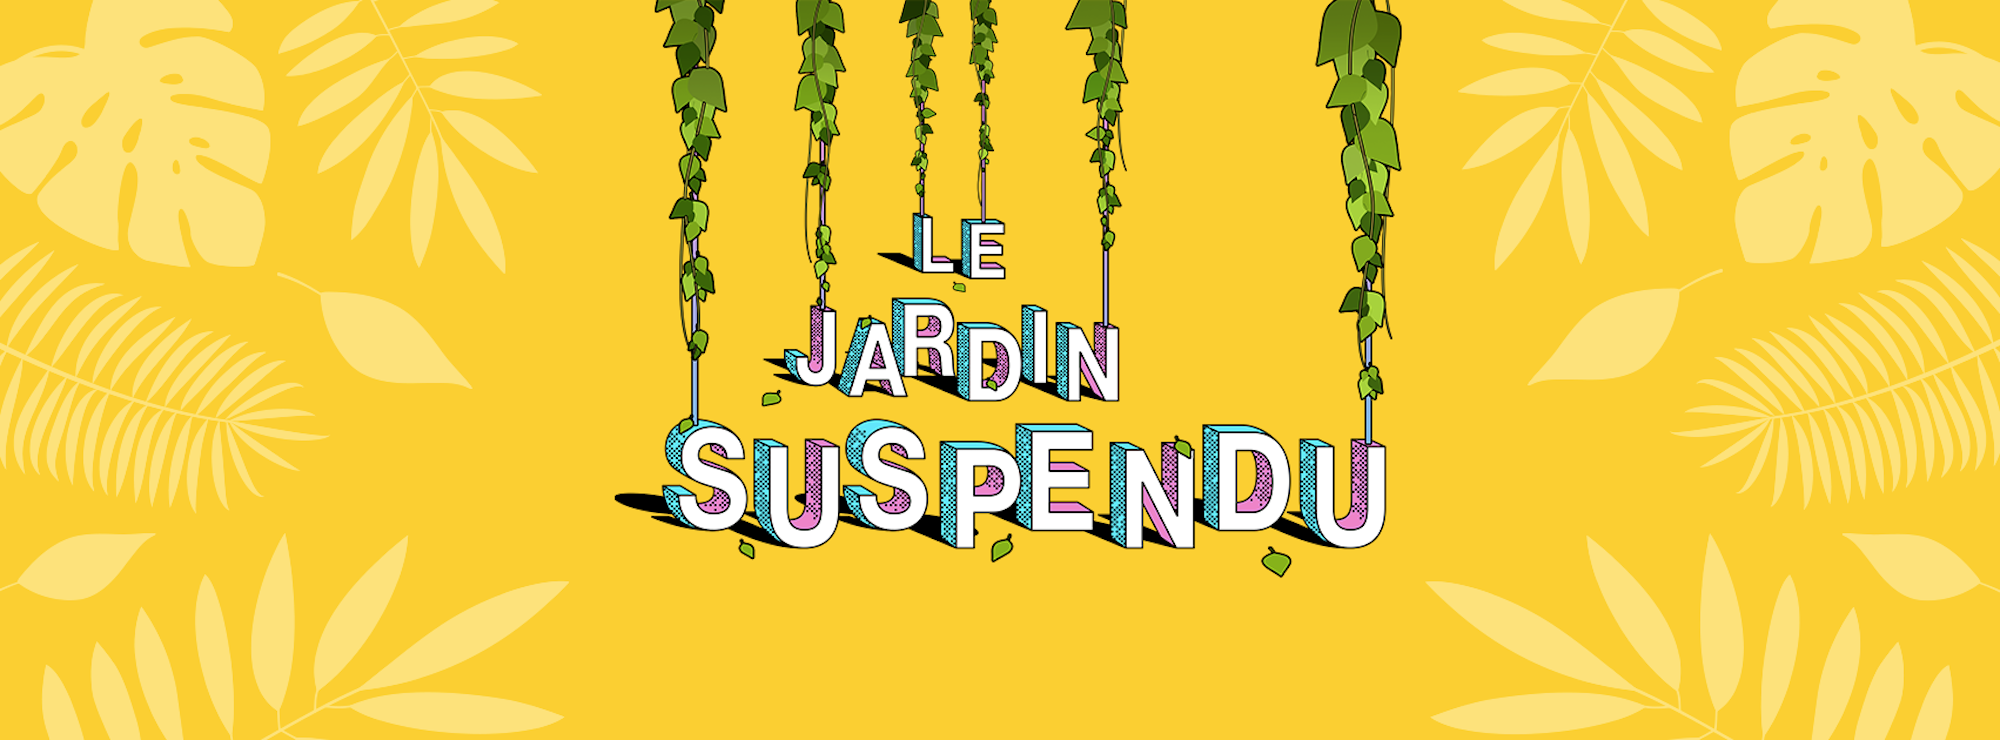 A poster for new summer hangout in Paris Le Jardin Suspendu.